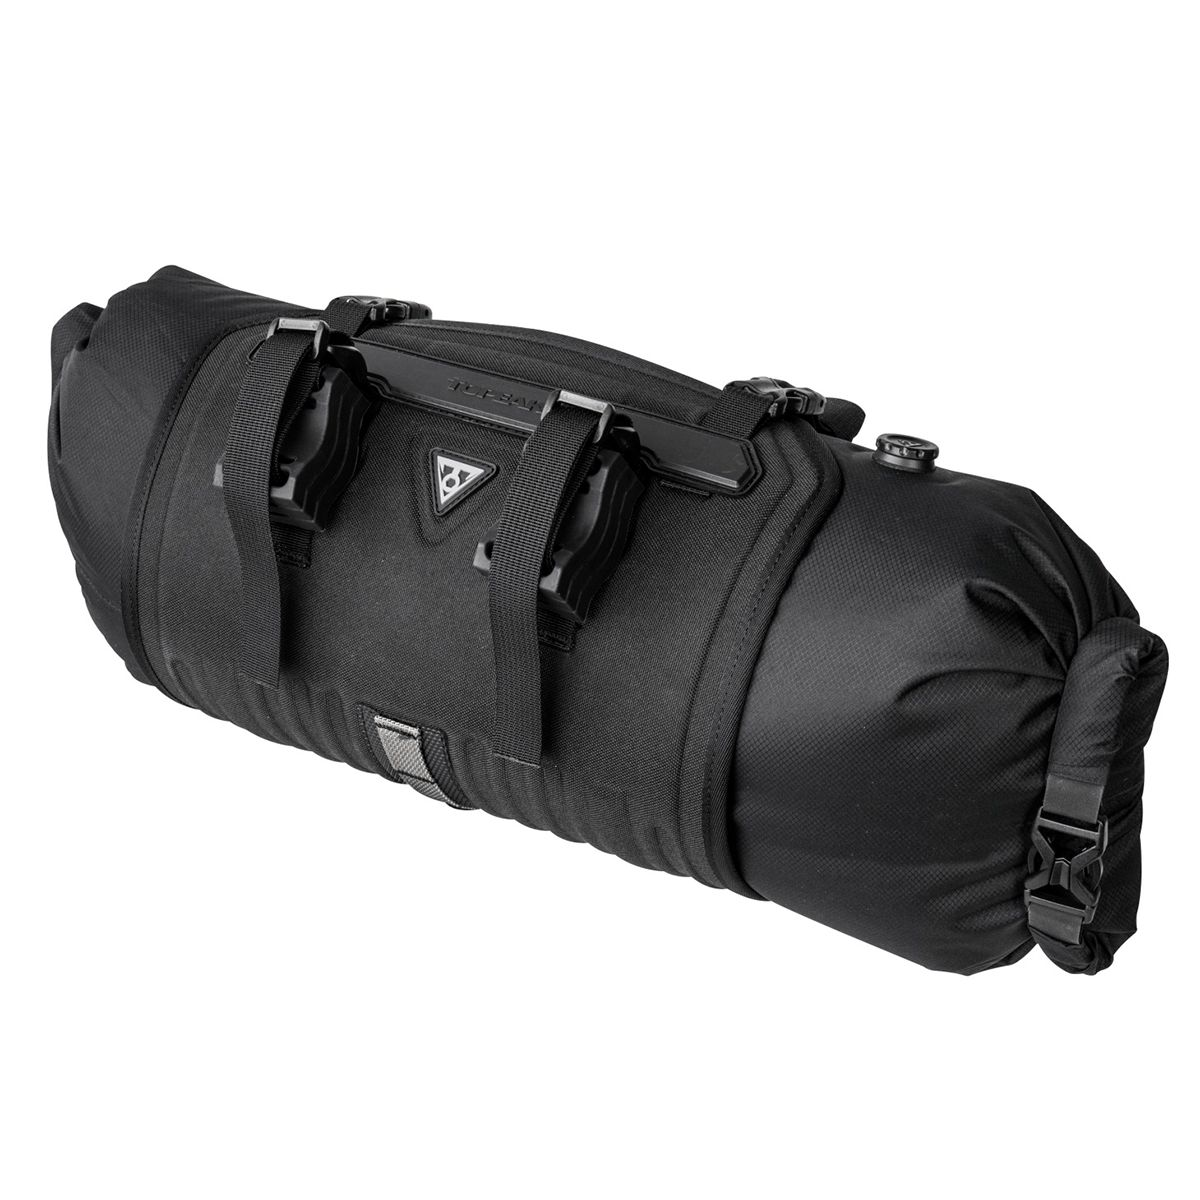 FRONTLOADER Bike Packing handlebar bag